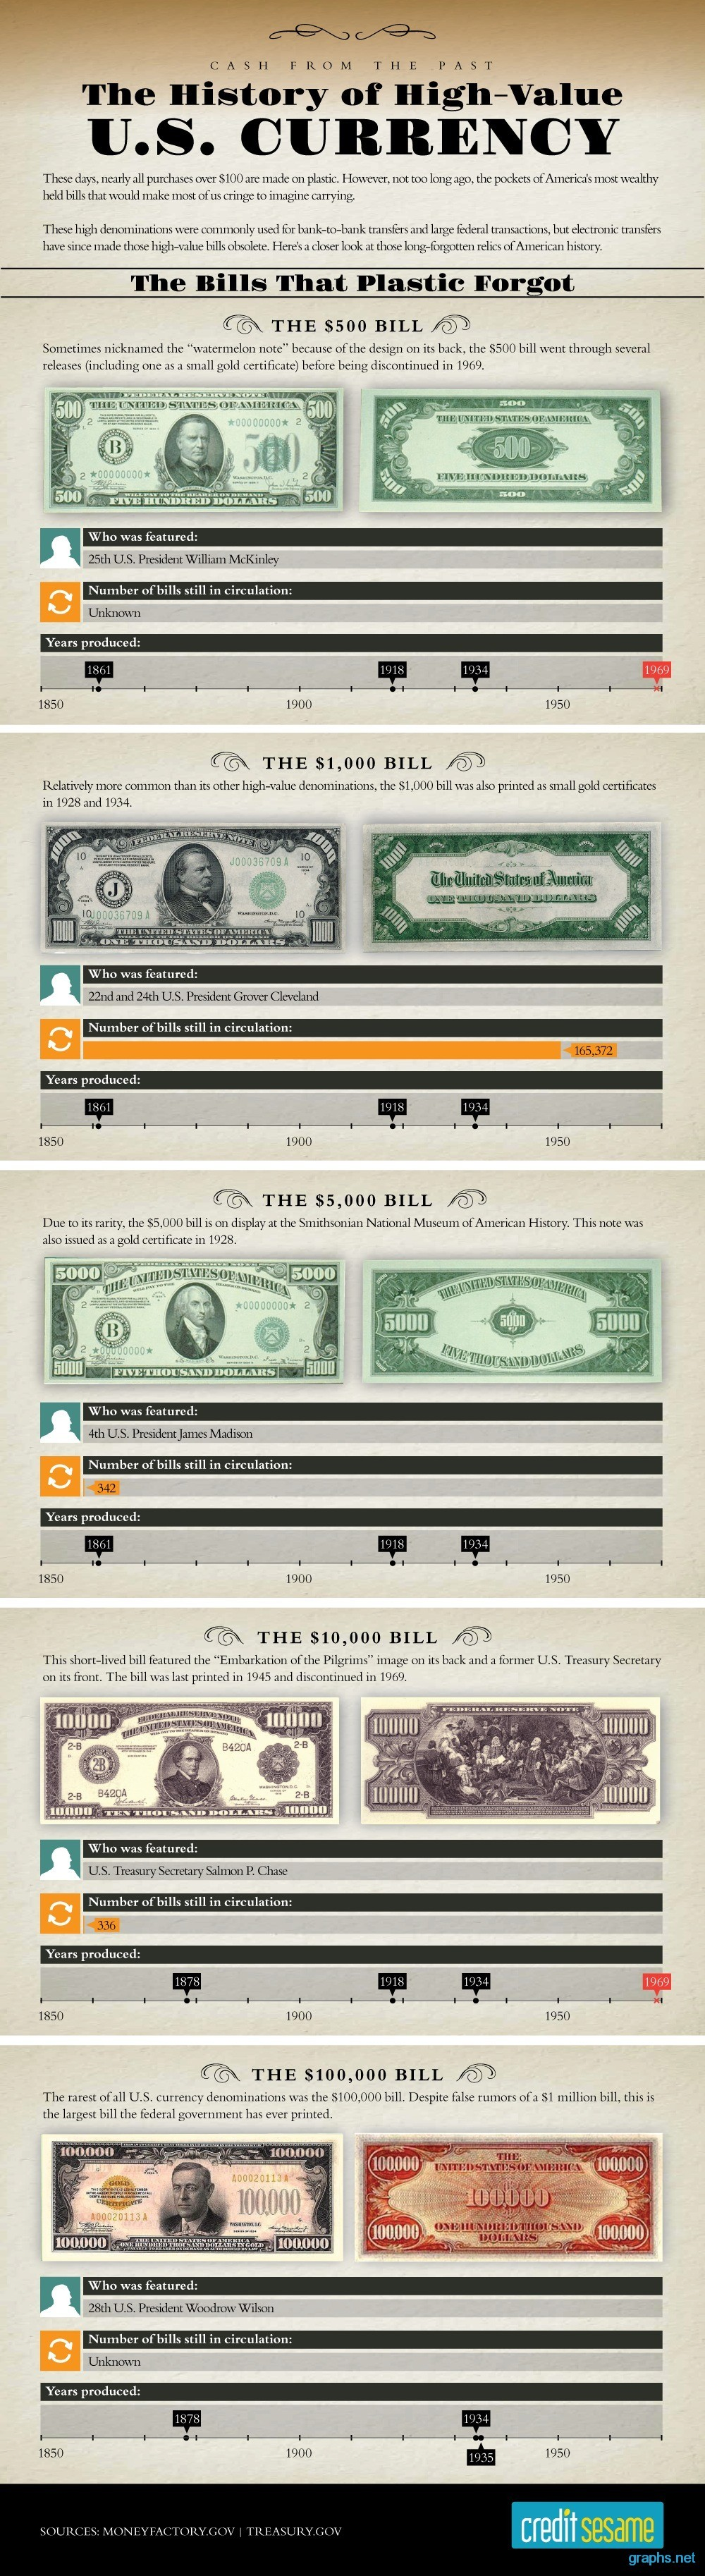 history of High-Value U.S. Currency: The Bills That Plastic Forgot